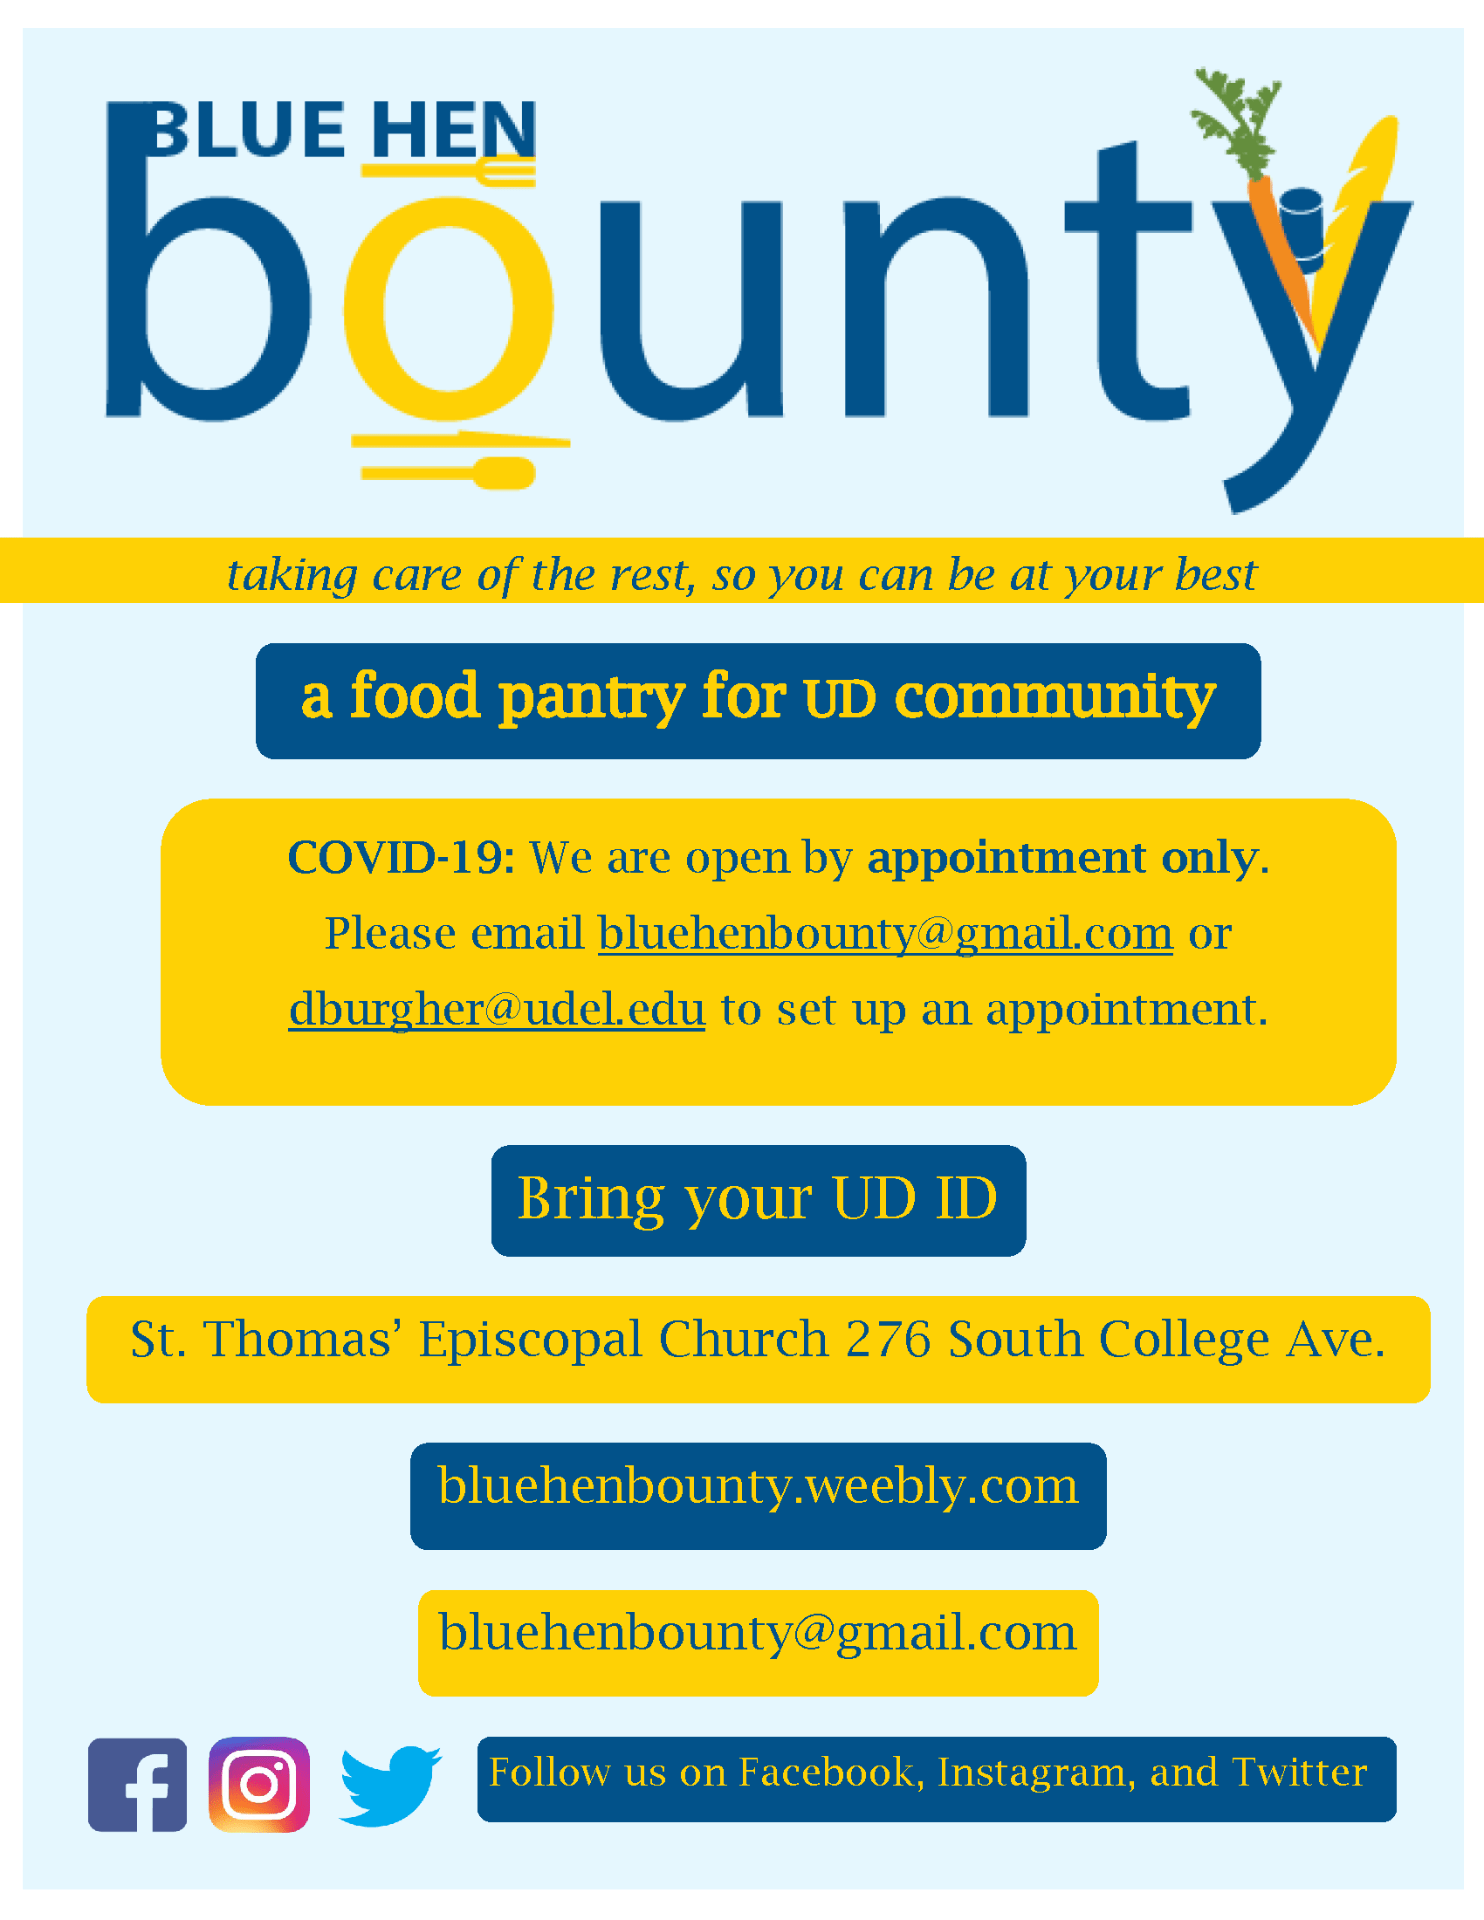 Blue Hen Bounty, taking care of the rest so you can be at your best, a food pantry for UD community. Covid-19: We are open by appointment only. Please email bluehenbounty@gmail.com or dburgher@udel.edu to set up an appointment. Bring your UD ID. St Thomas' Episcopal Chruch 276 South College Ave. bluehenbounty.weebly.com. bluehenbounty@gmail.com. Follow us on Facebook, Instagram, and Twitter.